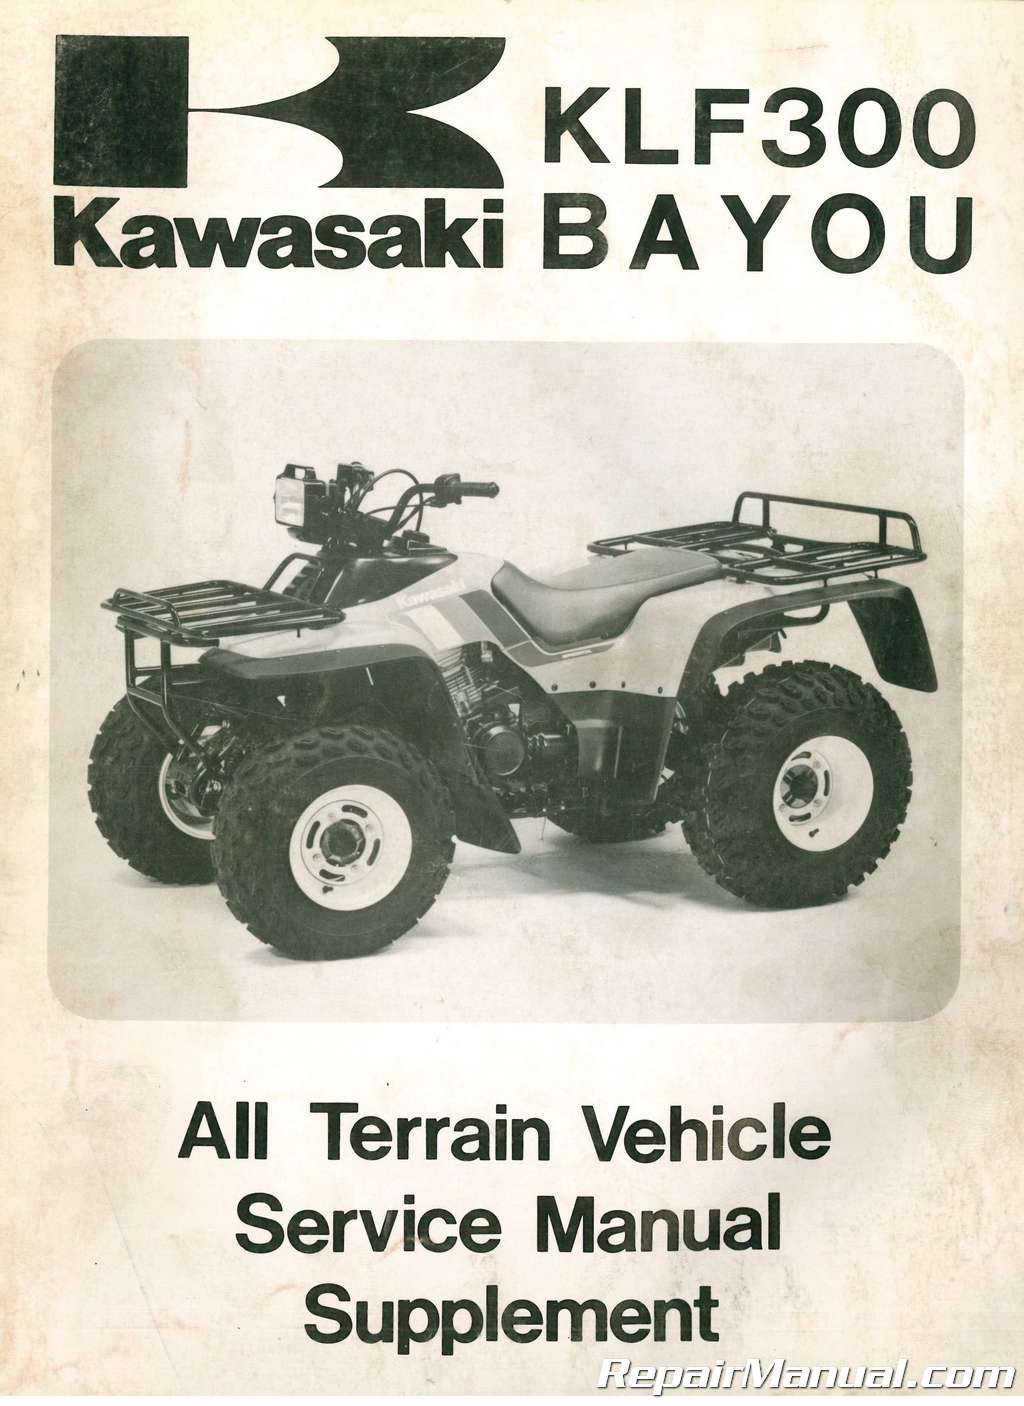 used 1988 kawasaki klf300 b1 bayou 300 service manual supplement rh repairmanual com klf 300 service manual pdf klf 300 repair manual